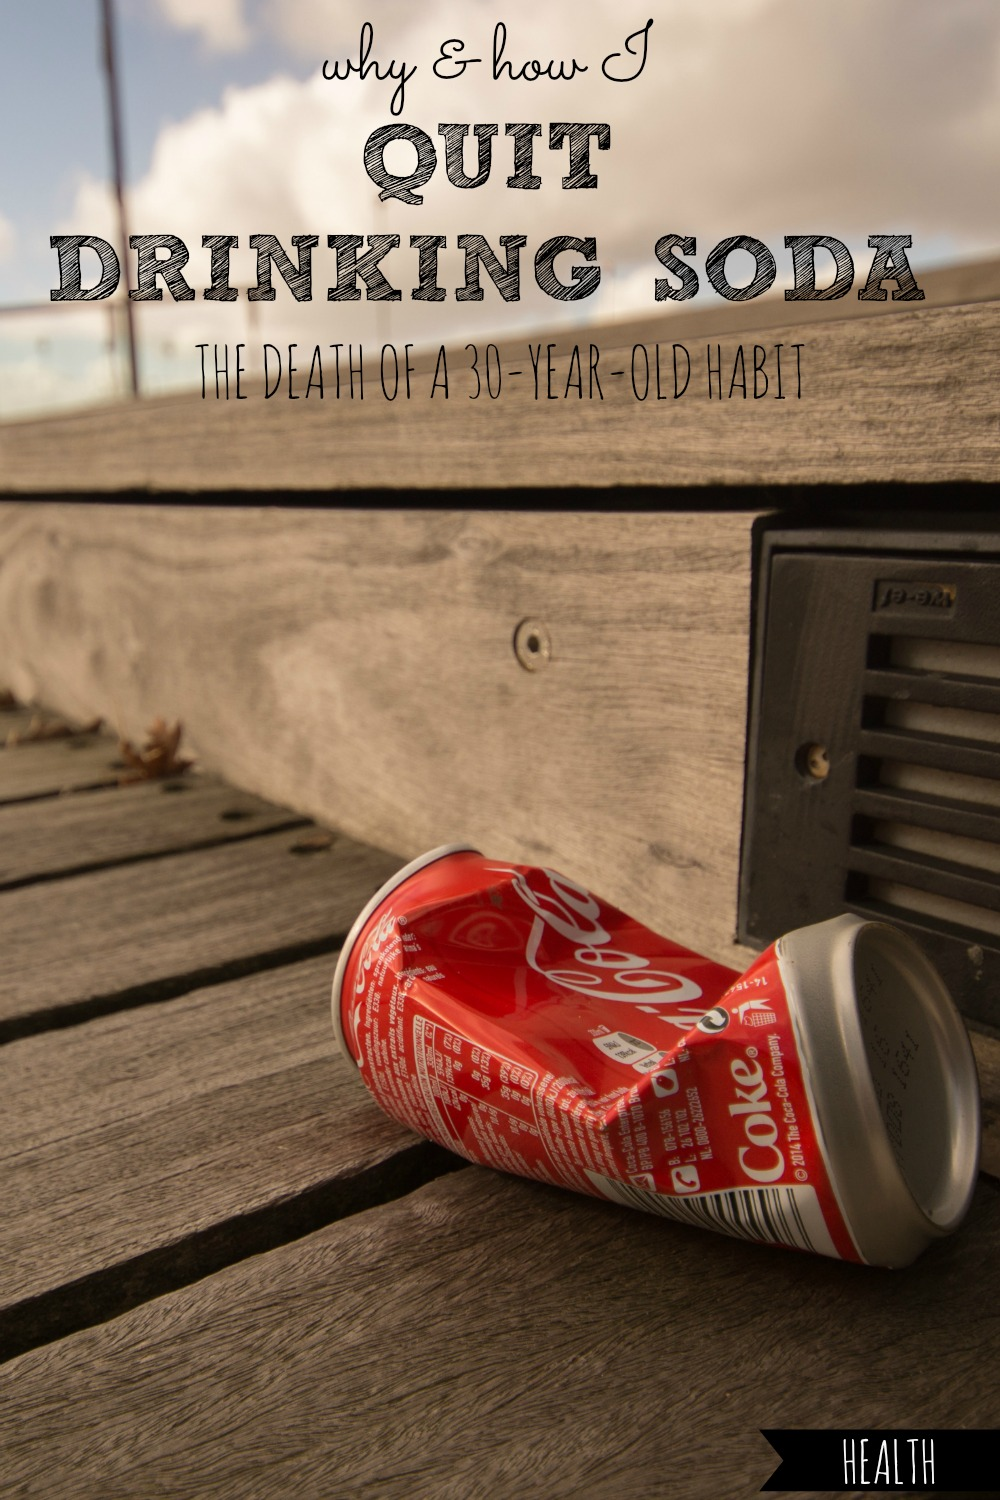 Ever thrown around the idea to quit drinking soda? Here's what finally convinced me to break up with soda after a 30-year-old habit, exactly how I did it, and how you can too! #quit #stop #drinking #soda #sodas #pop #pops #sodapop #cola #colas #coke #dietcoke #sugar #artificial #sweetener #sweeteners #inflammation #inflammatory #reduce #antiinflammatory #diet #sweet #tooth #depression #dehydrated #dehydration #age #aging #antiaging #cold #turkey #substitute #substitution